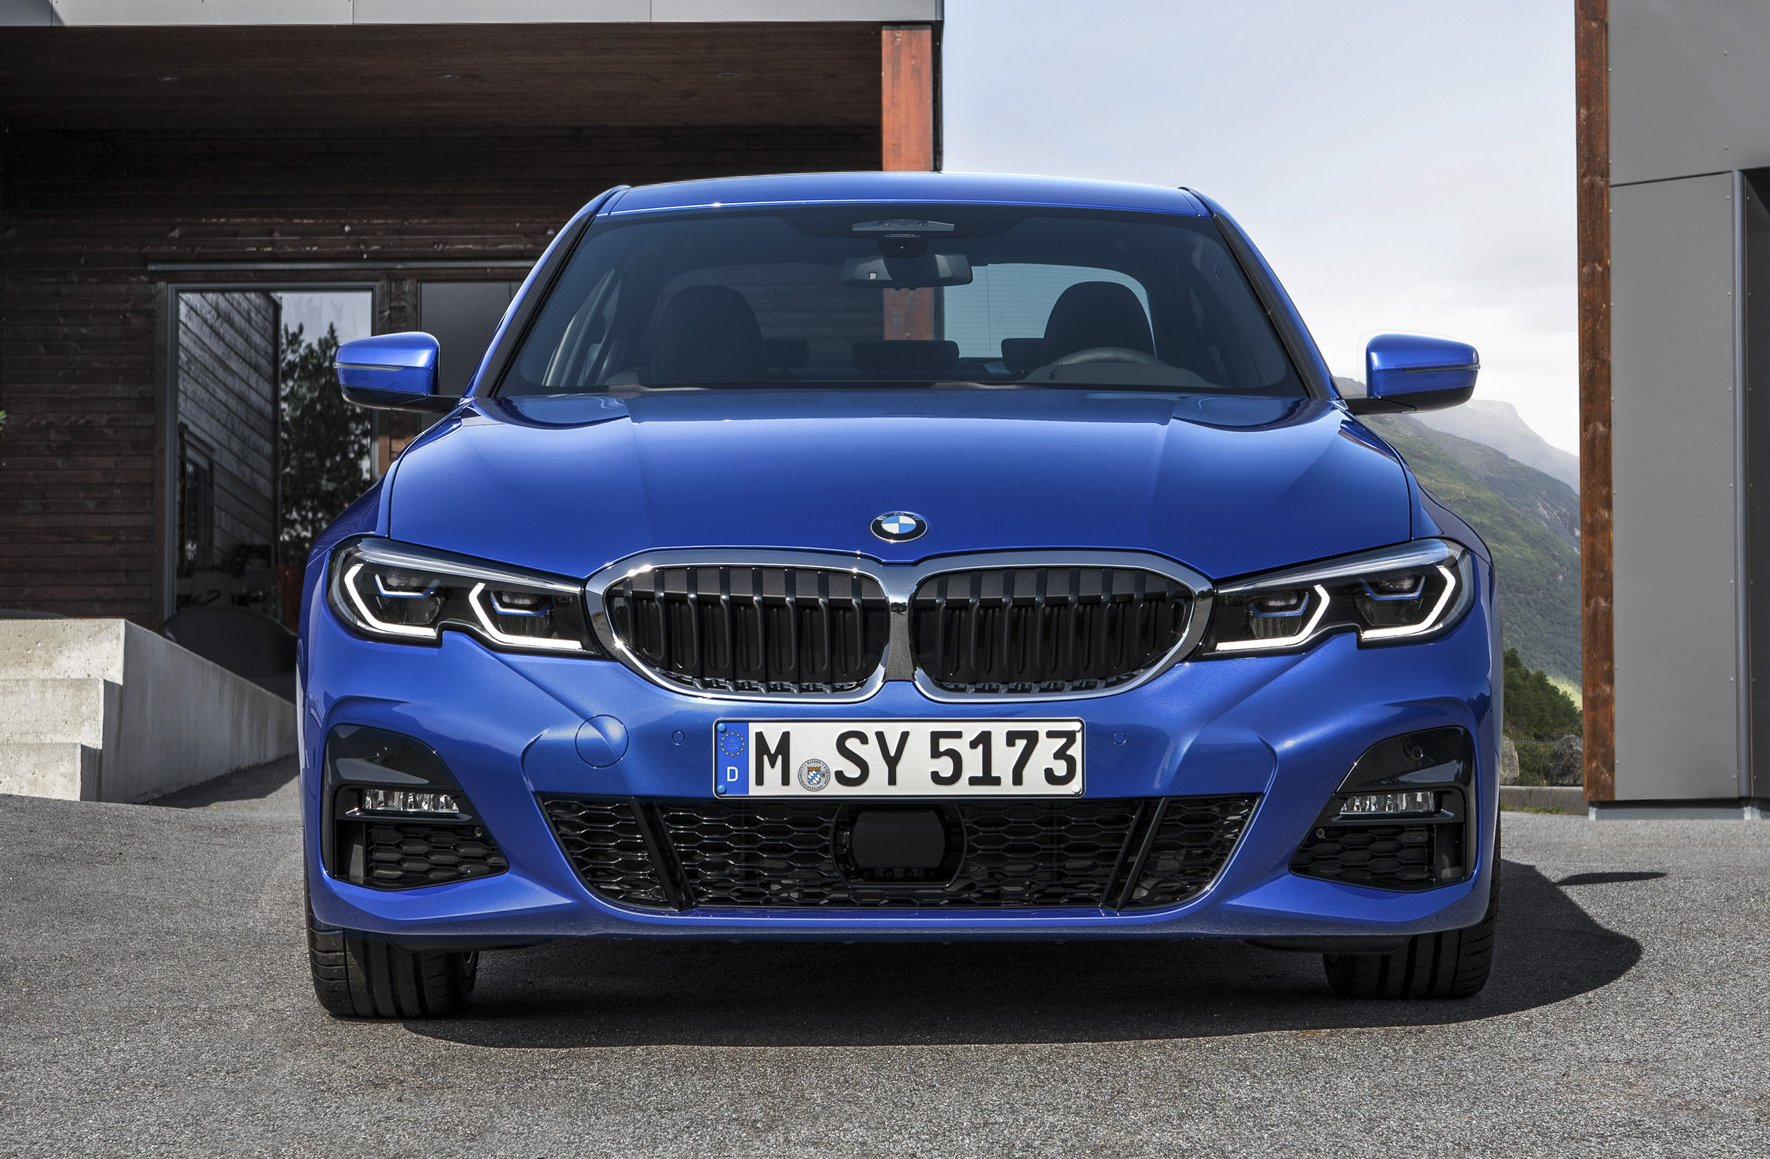 31 A 2020 BMW 3 Series Brings Exterior